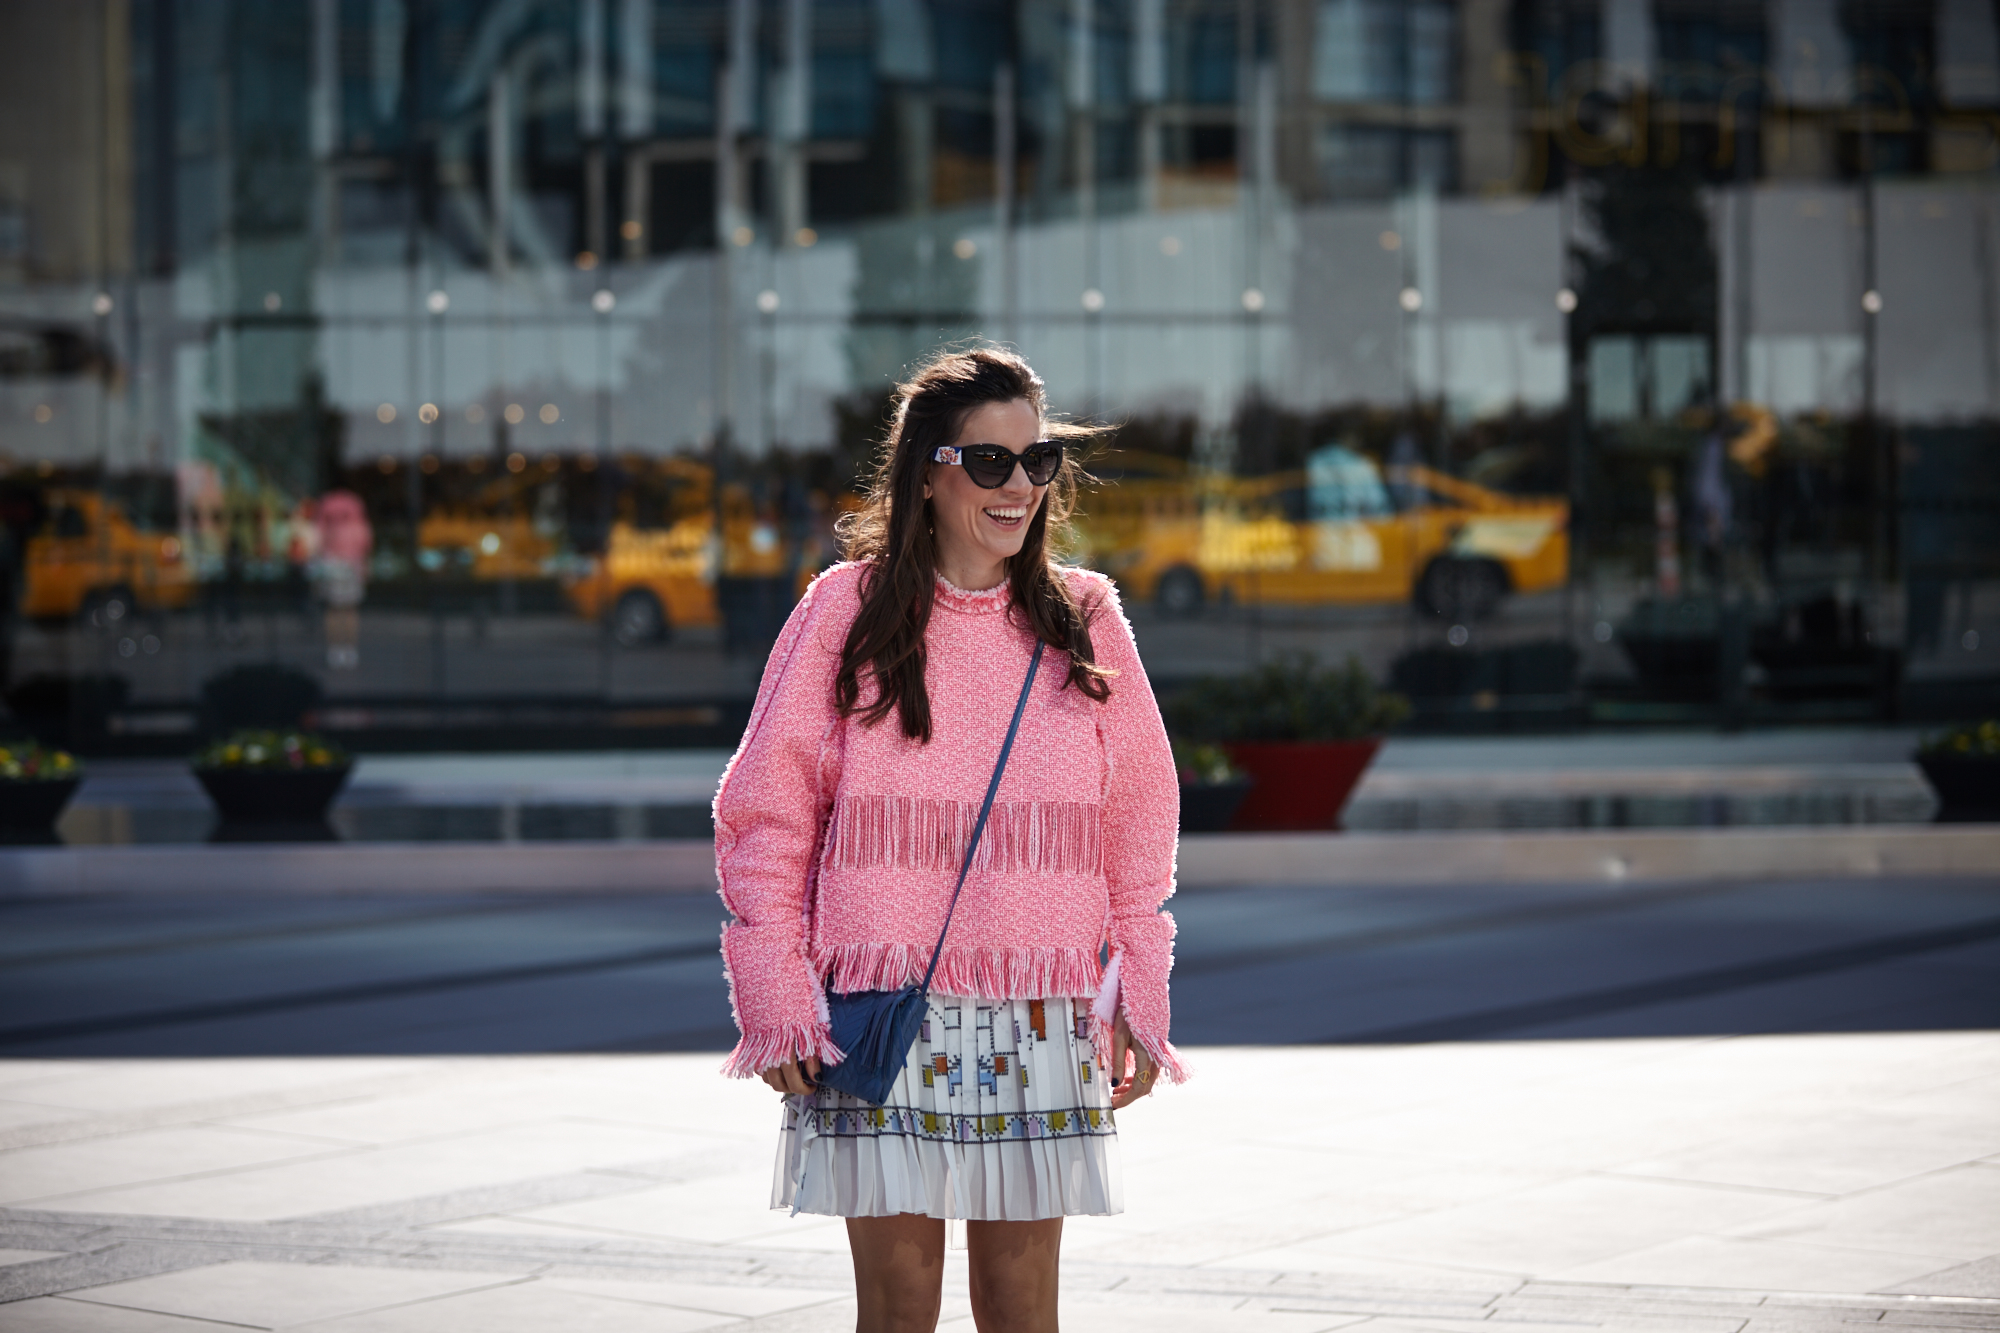 billur saatci, street style, mbfwi, off ne giysem, turkish style blogger, mercedes benz fashion week istanbul, zeynep tosun, dolce&gabbana, air force, misela, air force 1